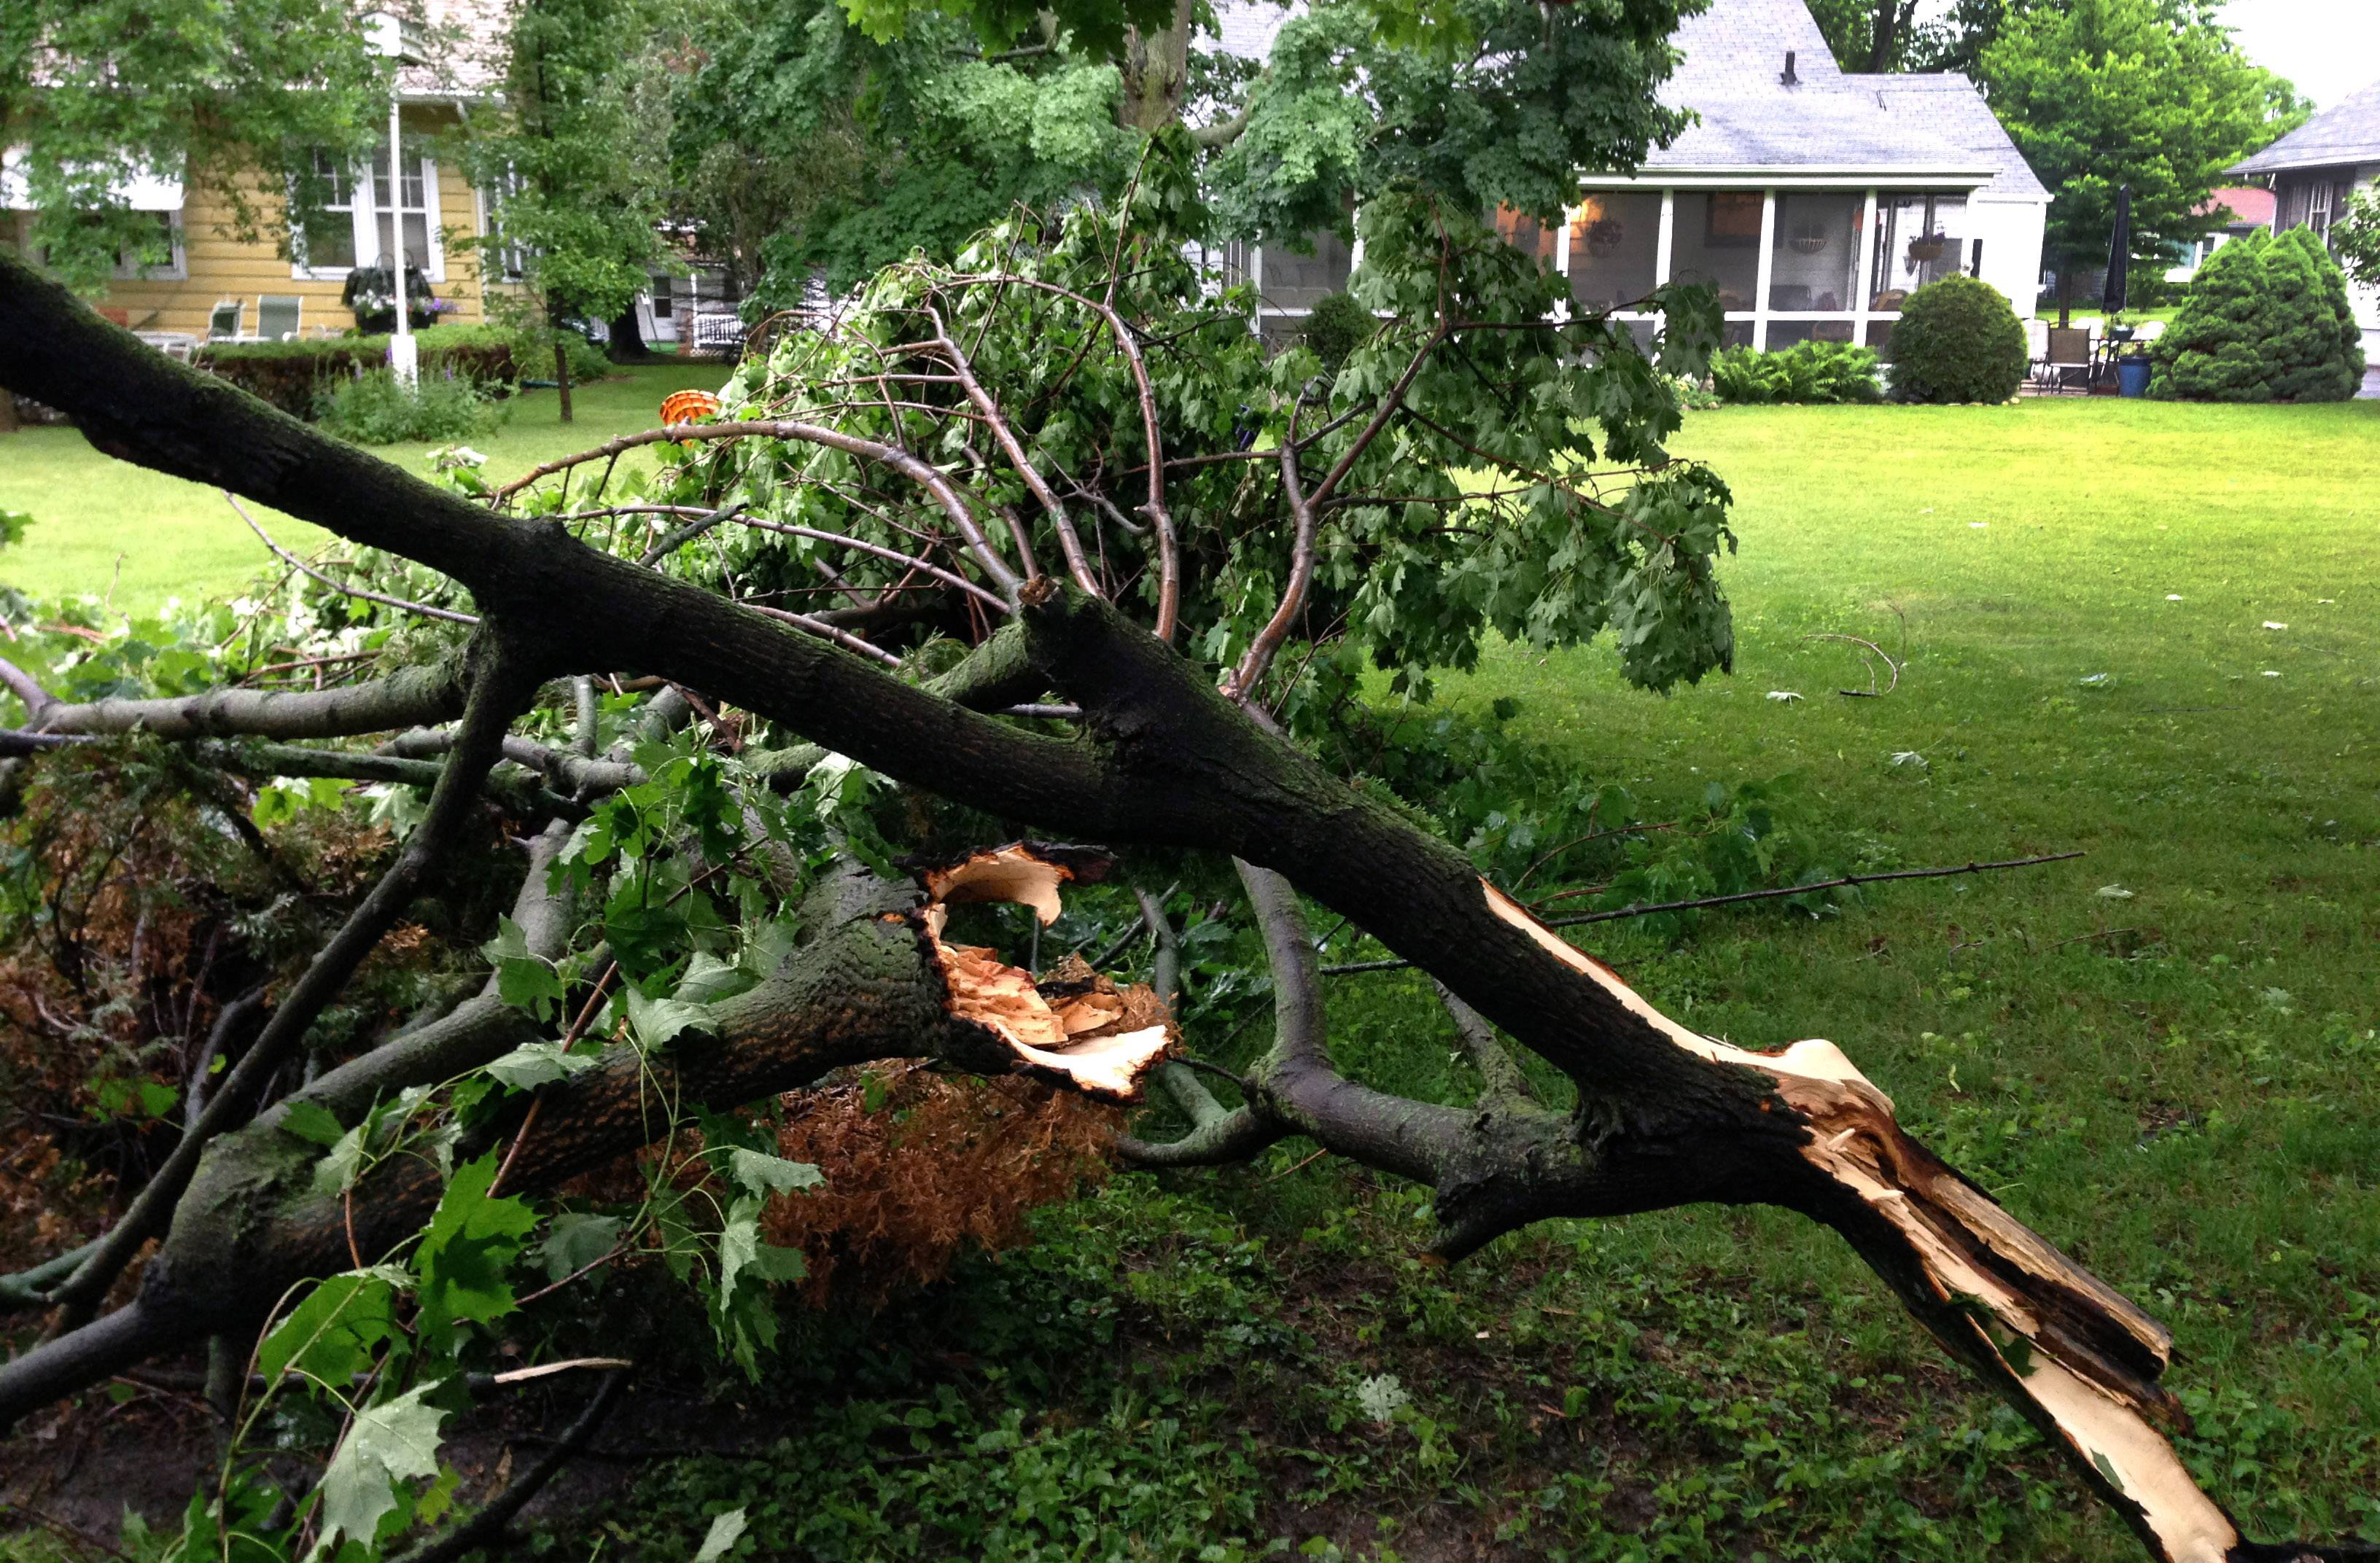 High winds and rain moved through Crystal Lake Saturday evening, knocking down branches and causing residents to seek shelter.